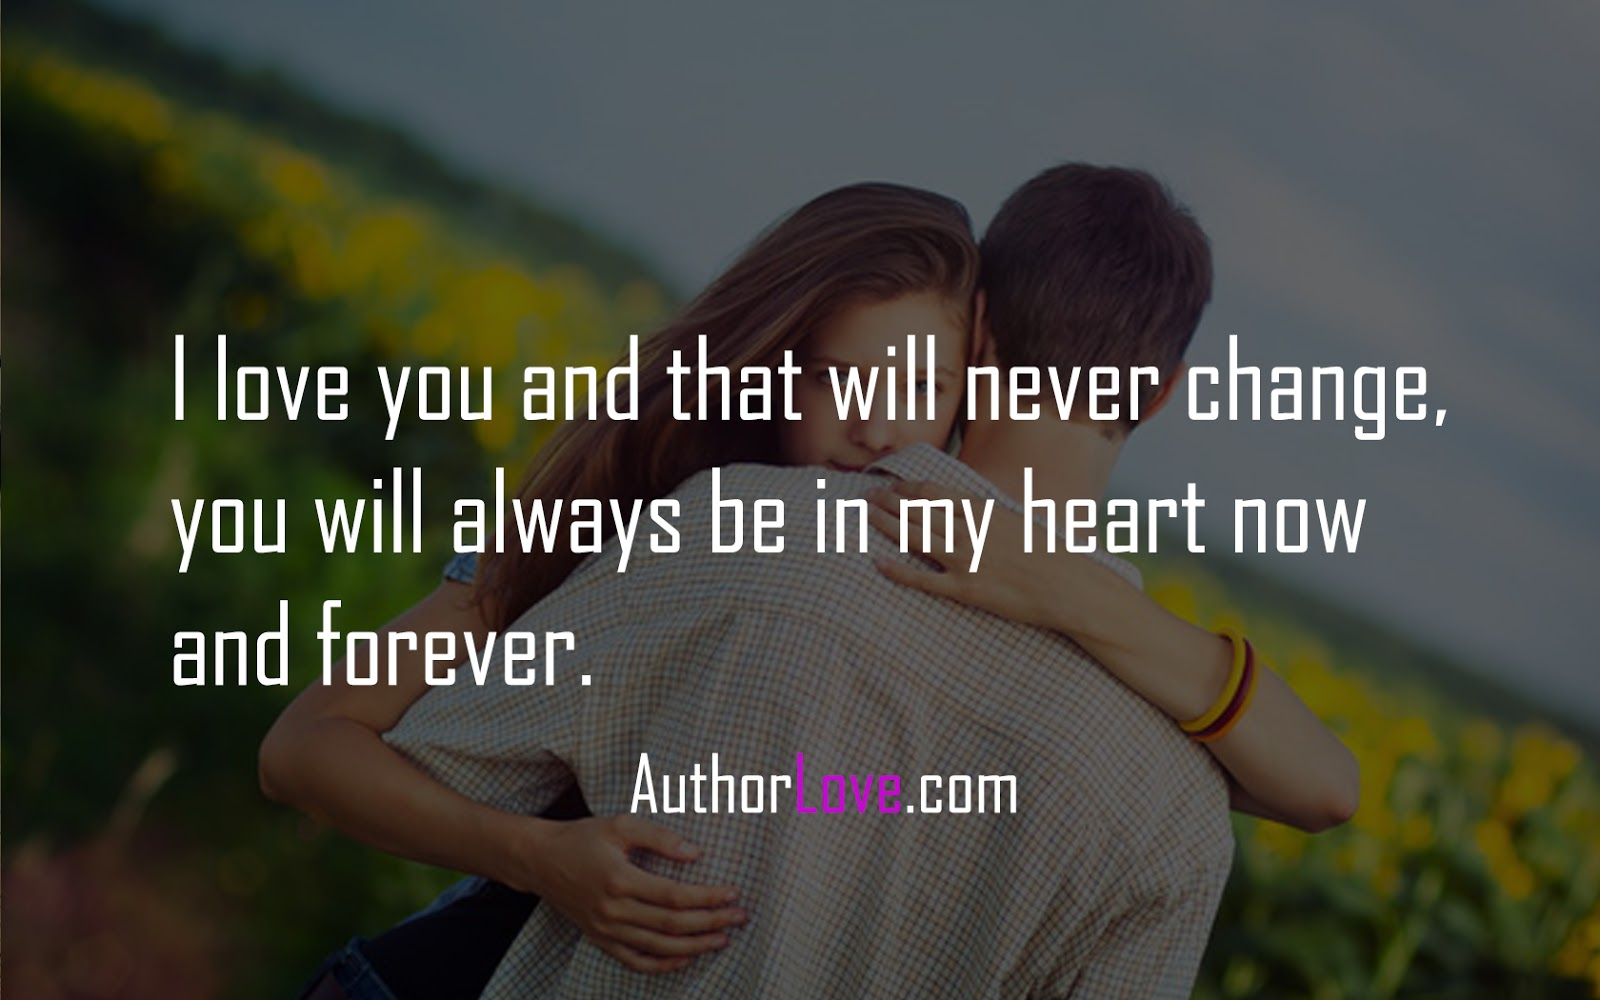 Romantic Love Quotes For Her I Love You And That Will Never Change  Love Quotes  Author Love